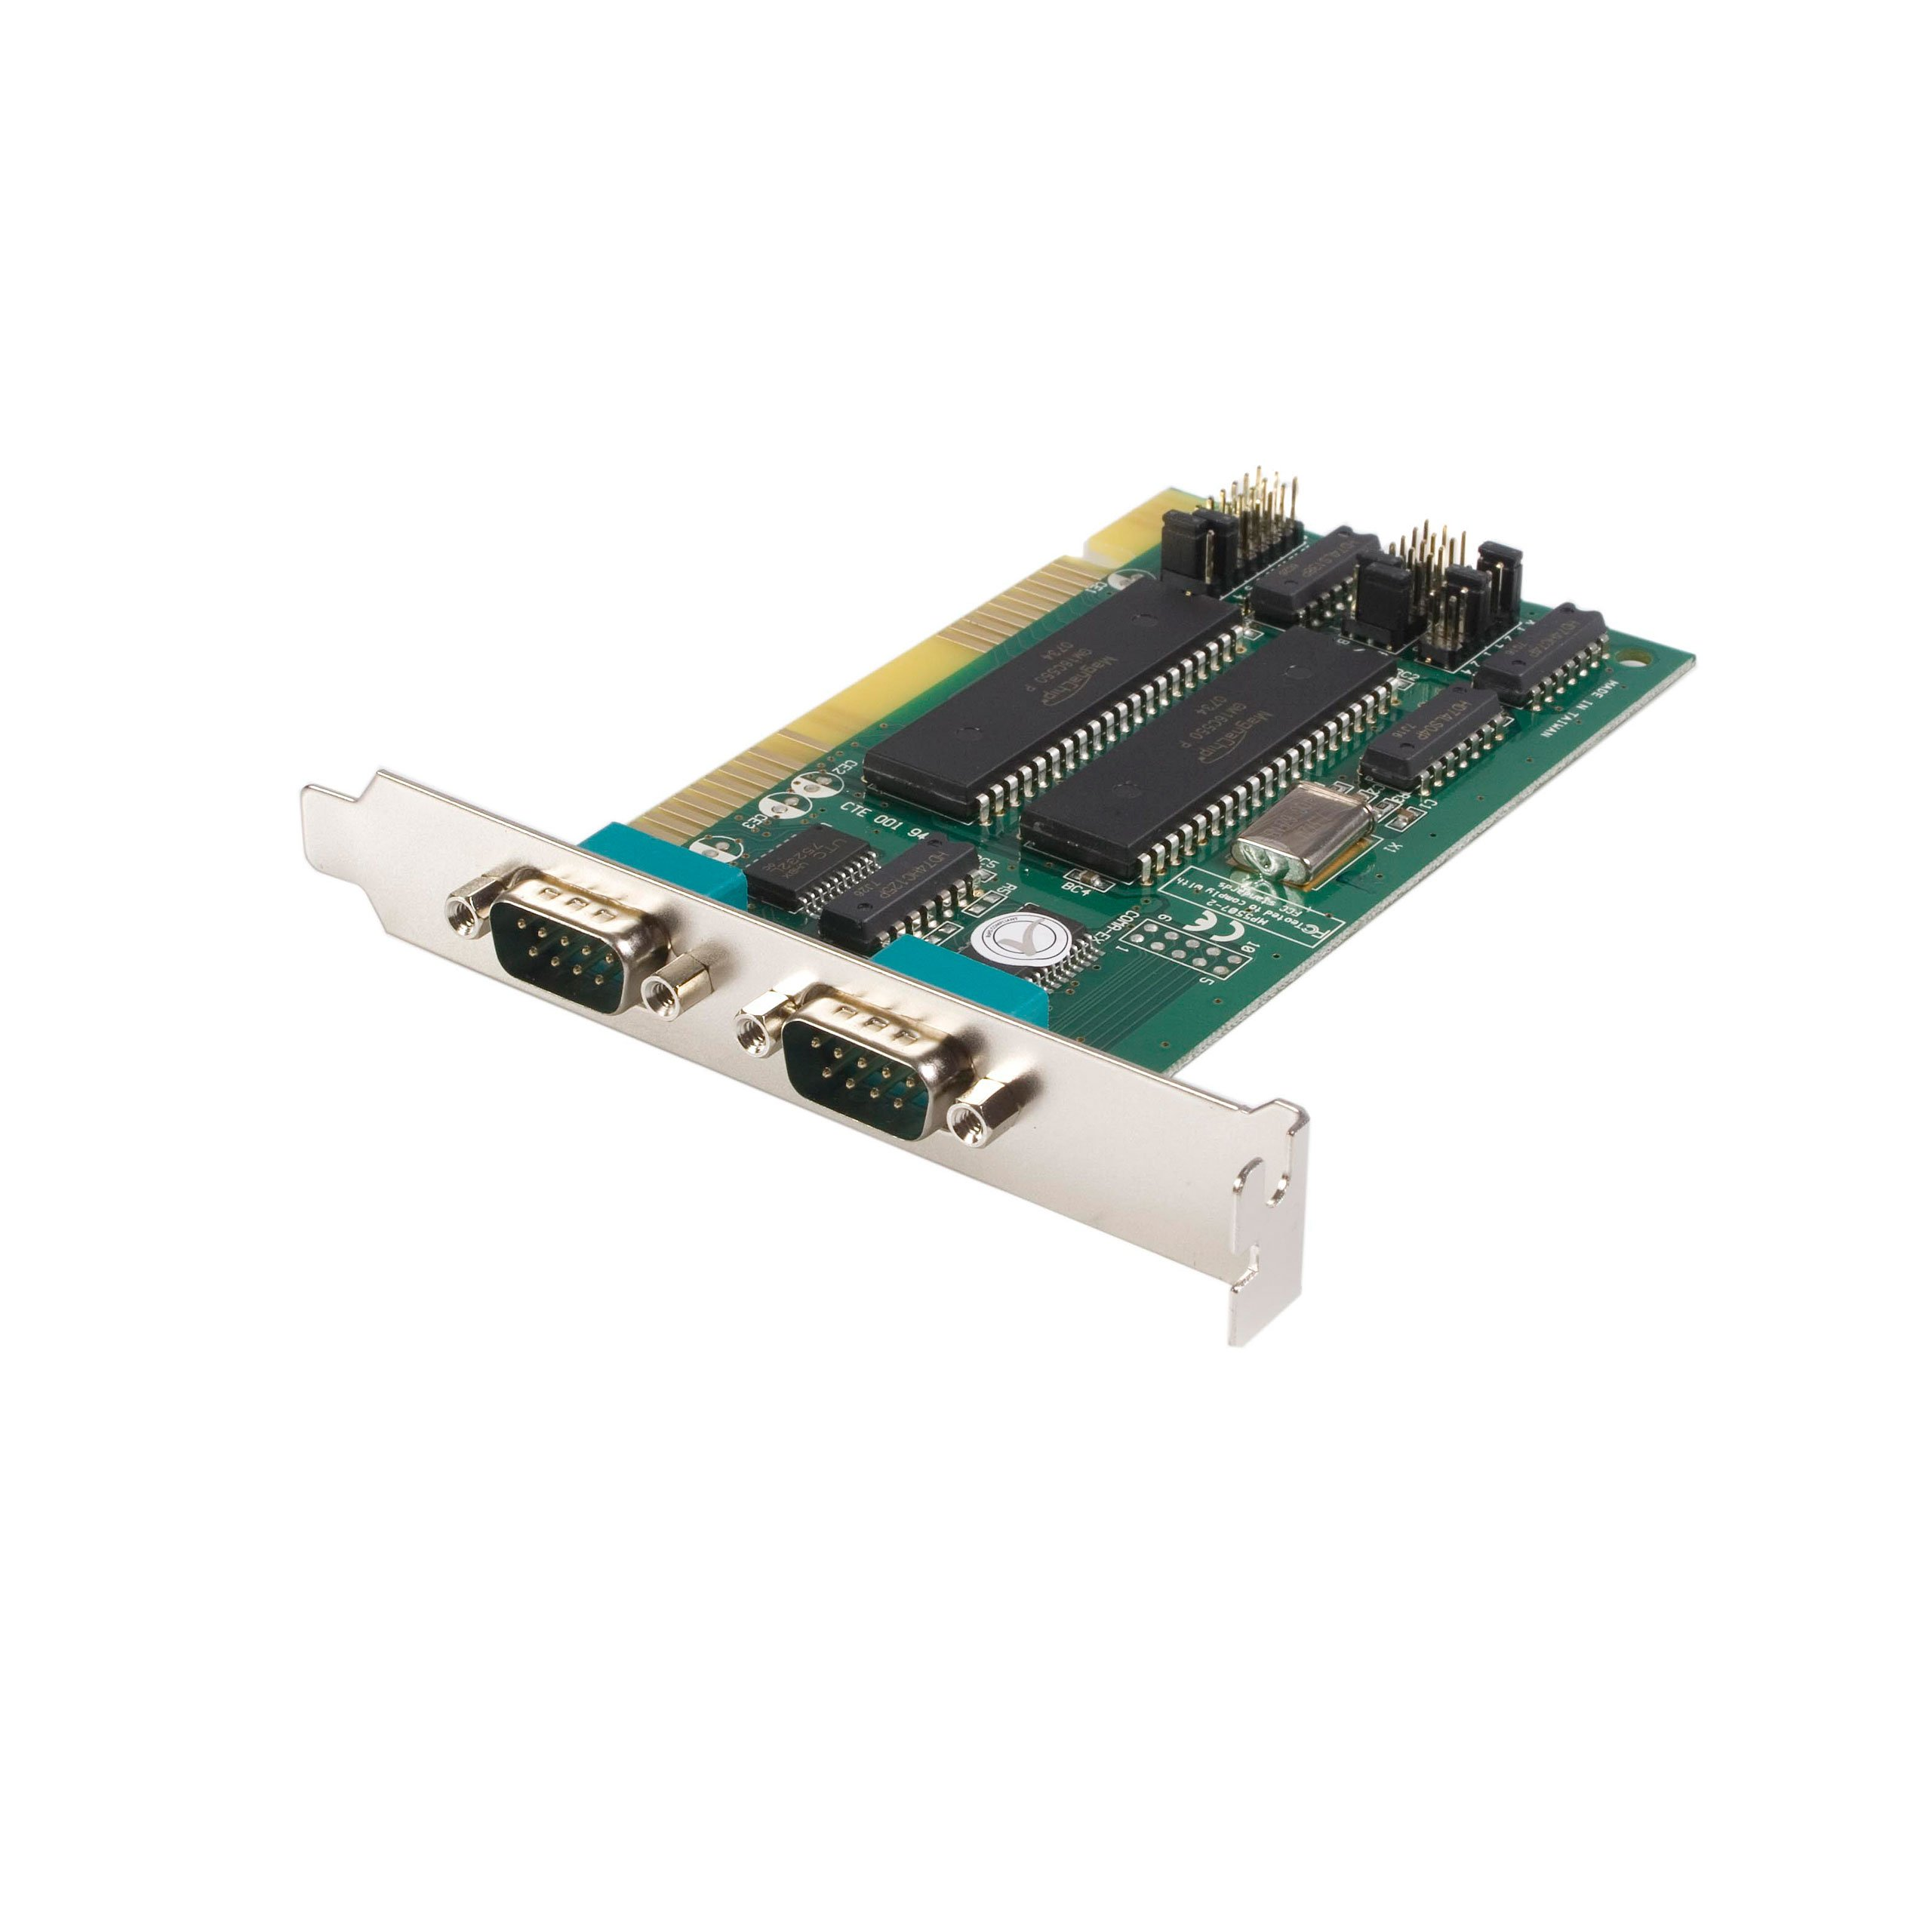 StarTech.com 2-Port ISA RS232 Serial Adapter Card with 16550 UART (ISA2S550)